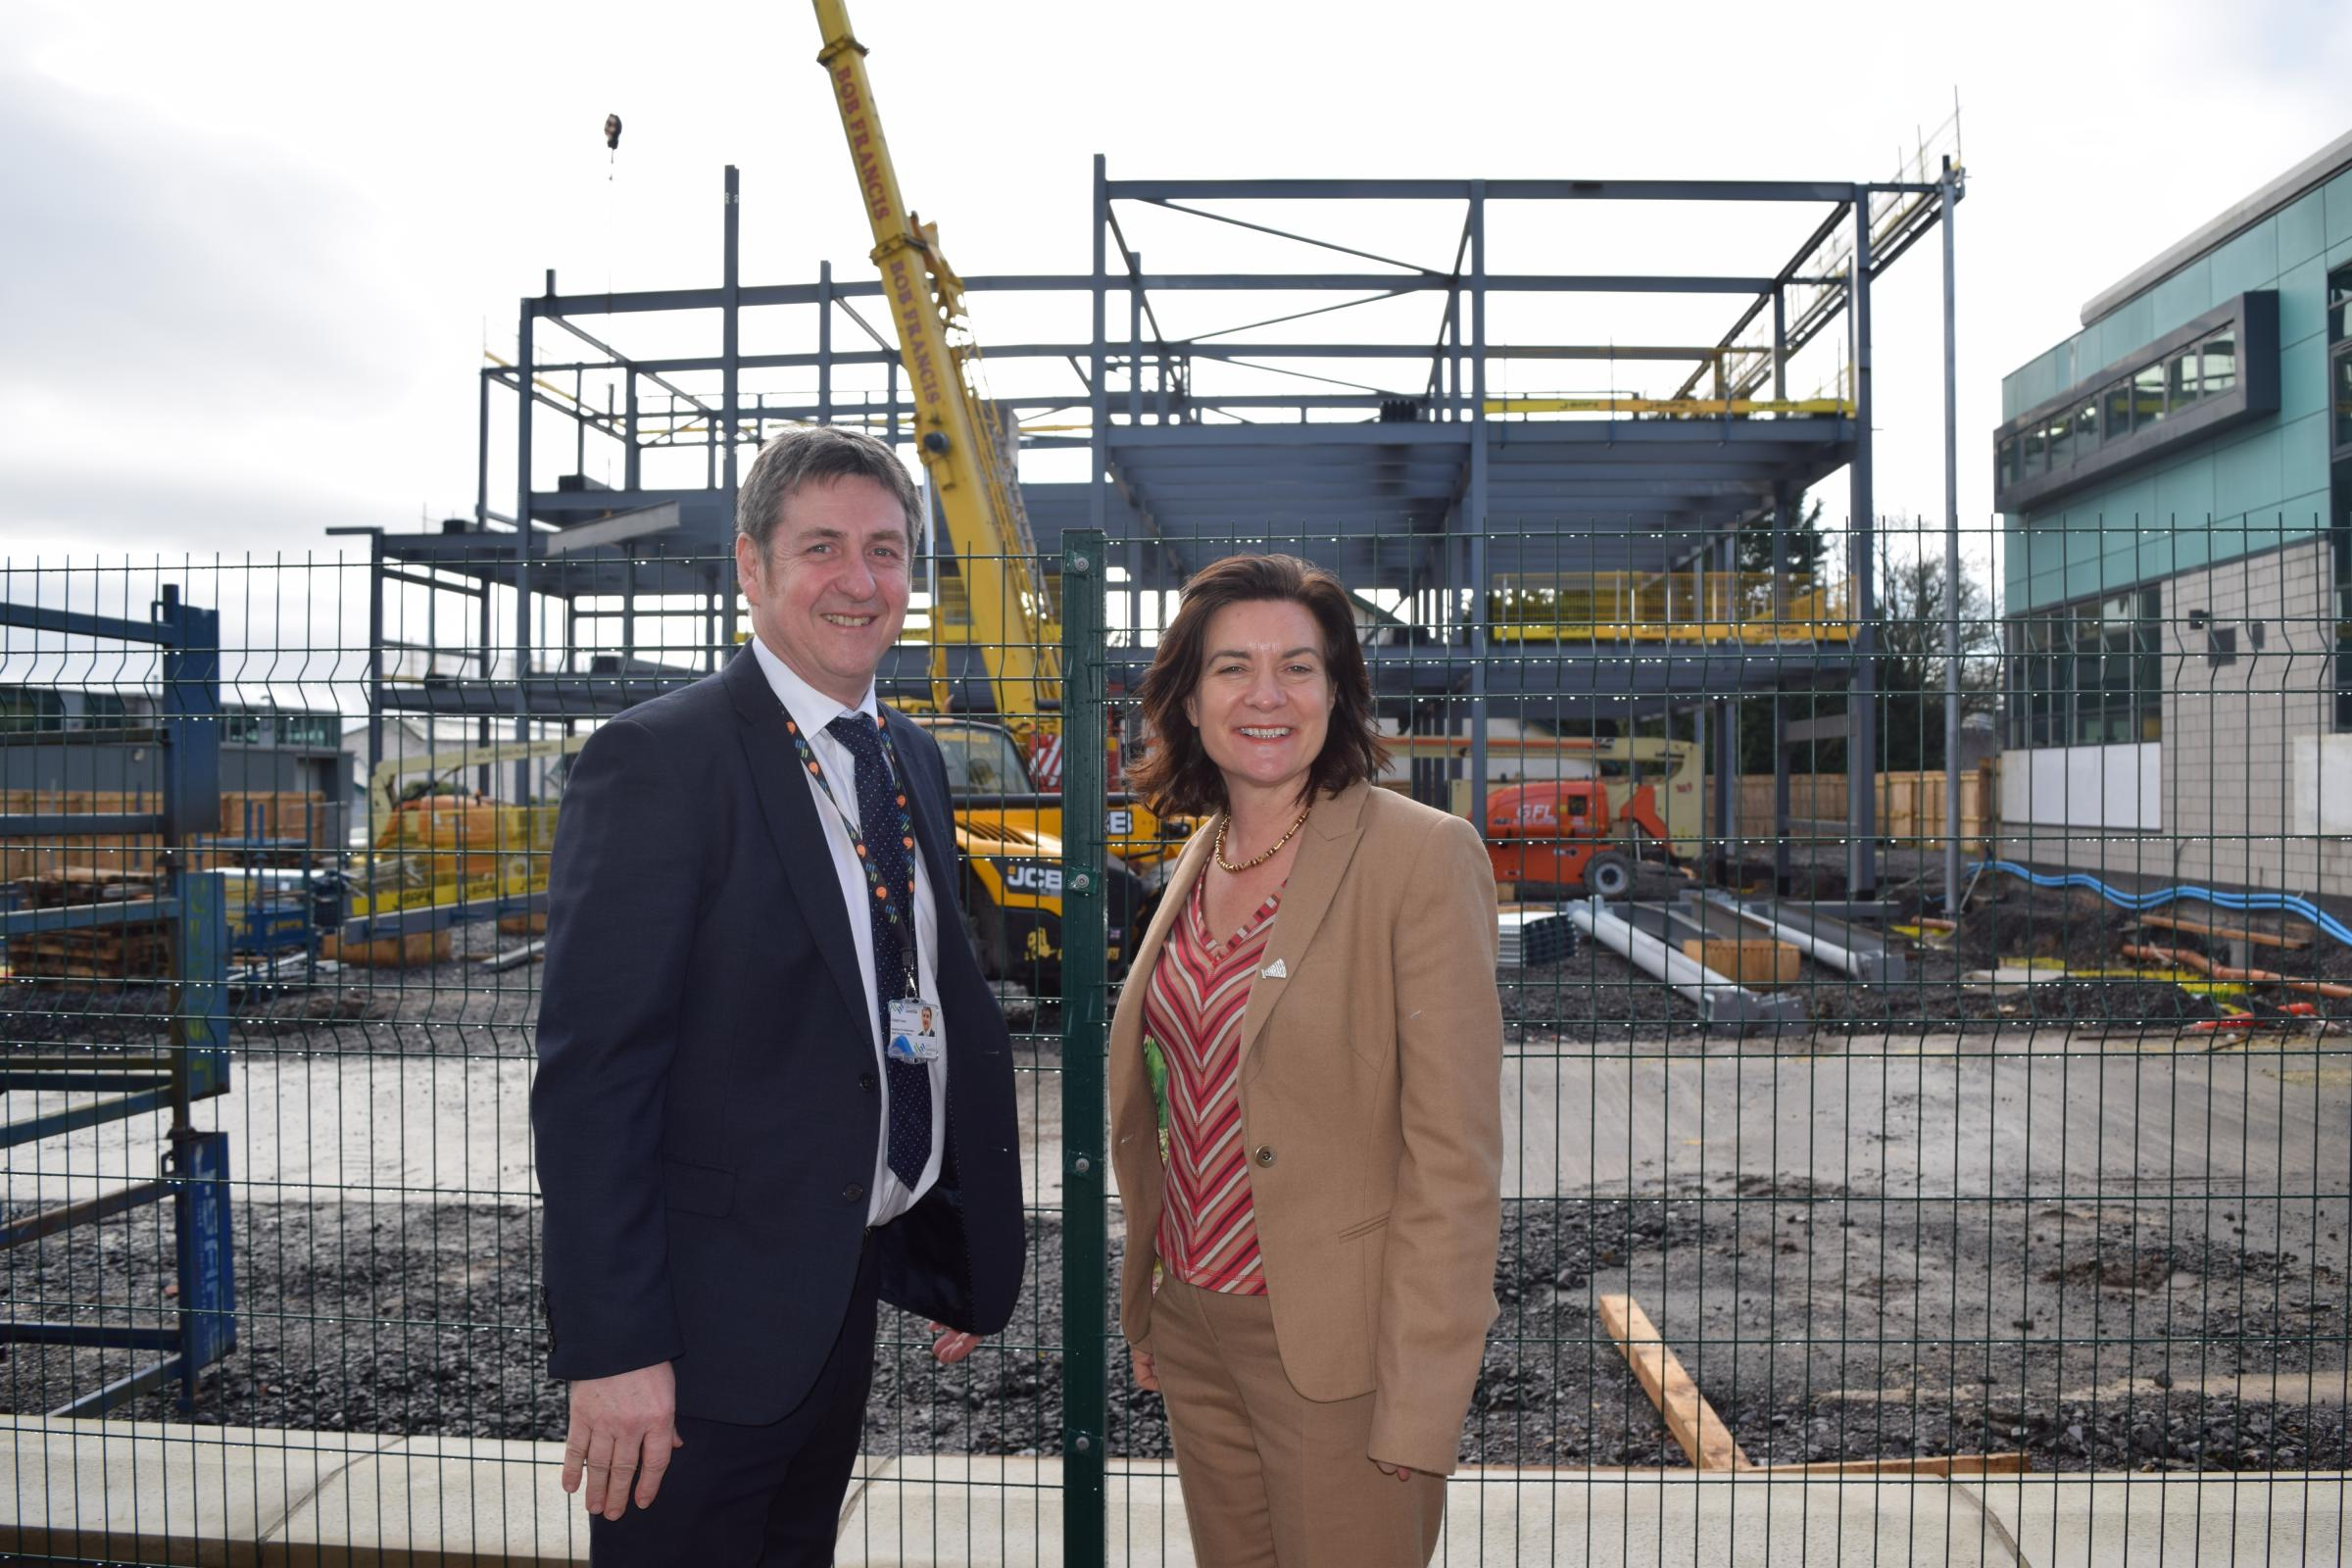 Dafydd Evans and Eluned Morgan against the backdrop of Coleg Menai's new Engineering Centre (currently under construction).